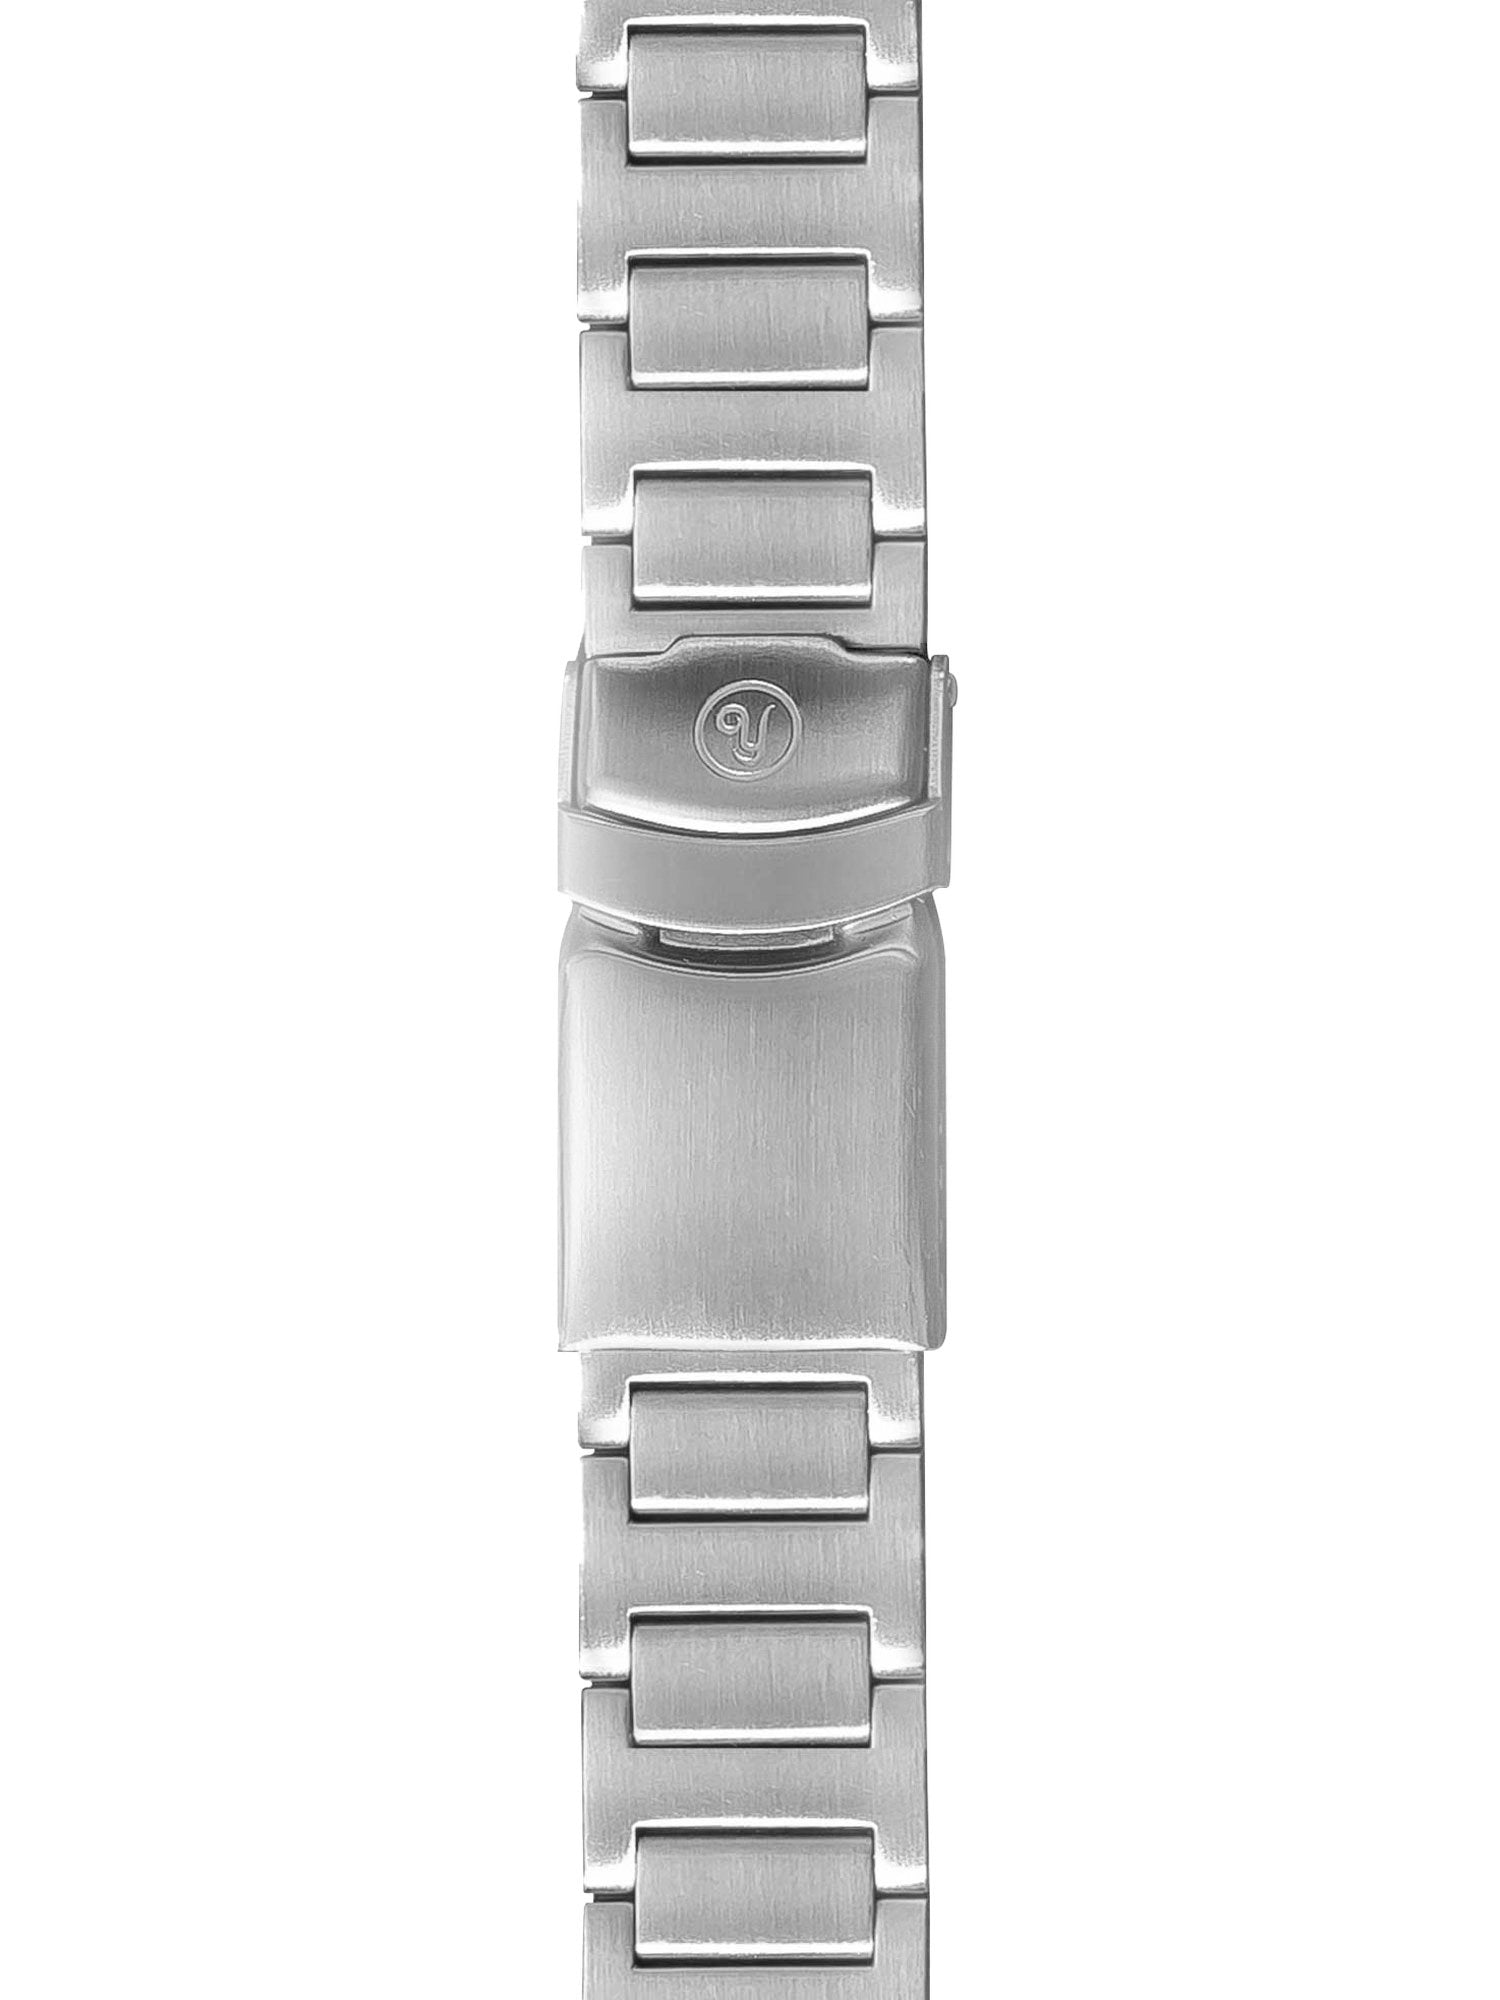 Stainless Steel Flygraf Pilot Watch Band 19mm